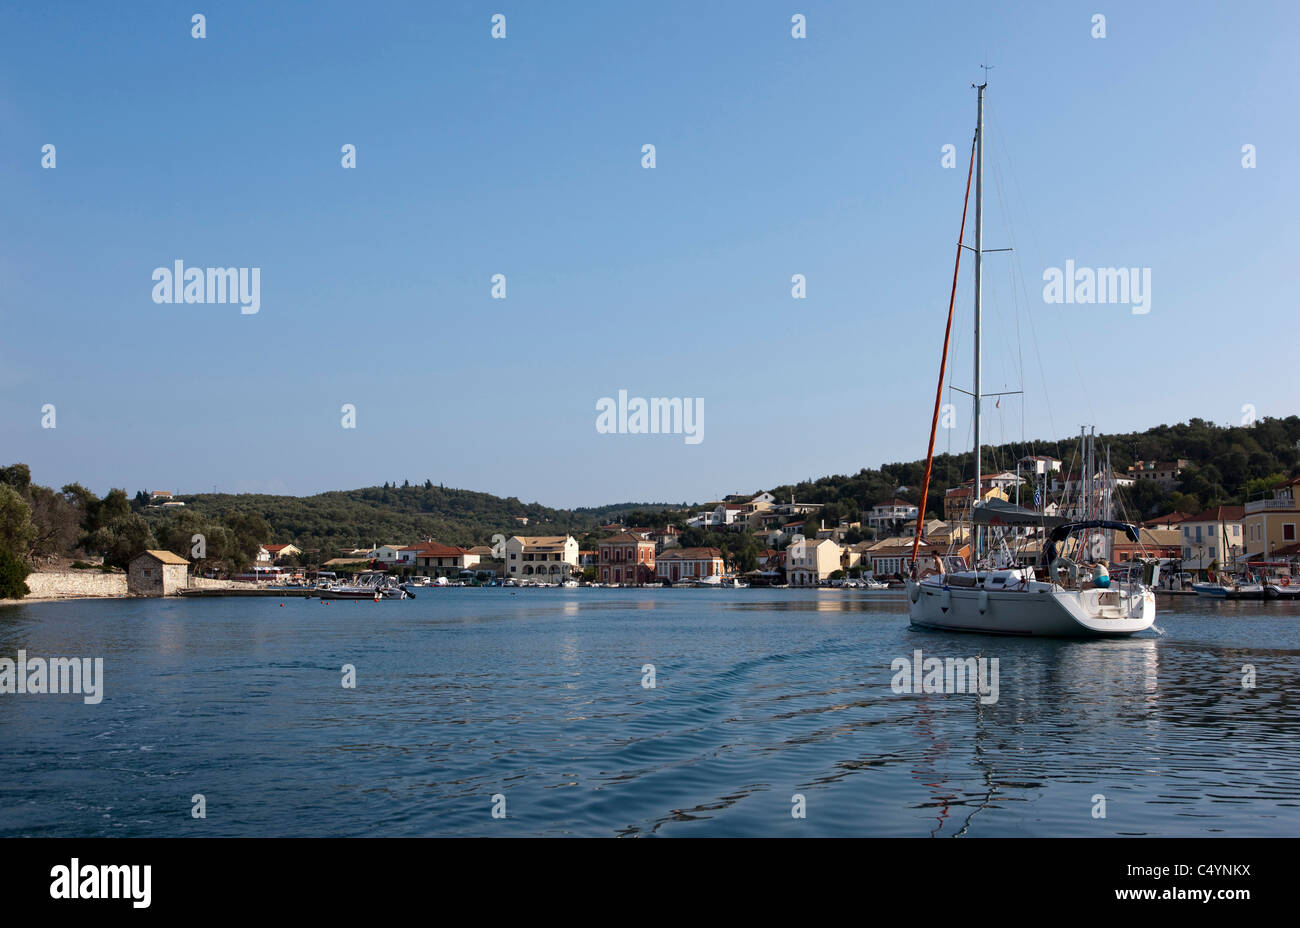 A sailing yacht enter Gaios harbour to moor up for the evening. Paxos, Greece. - Stock Image